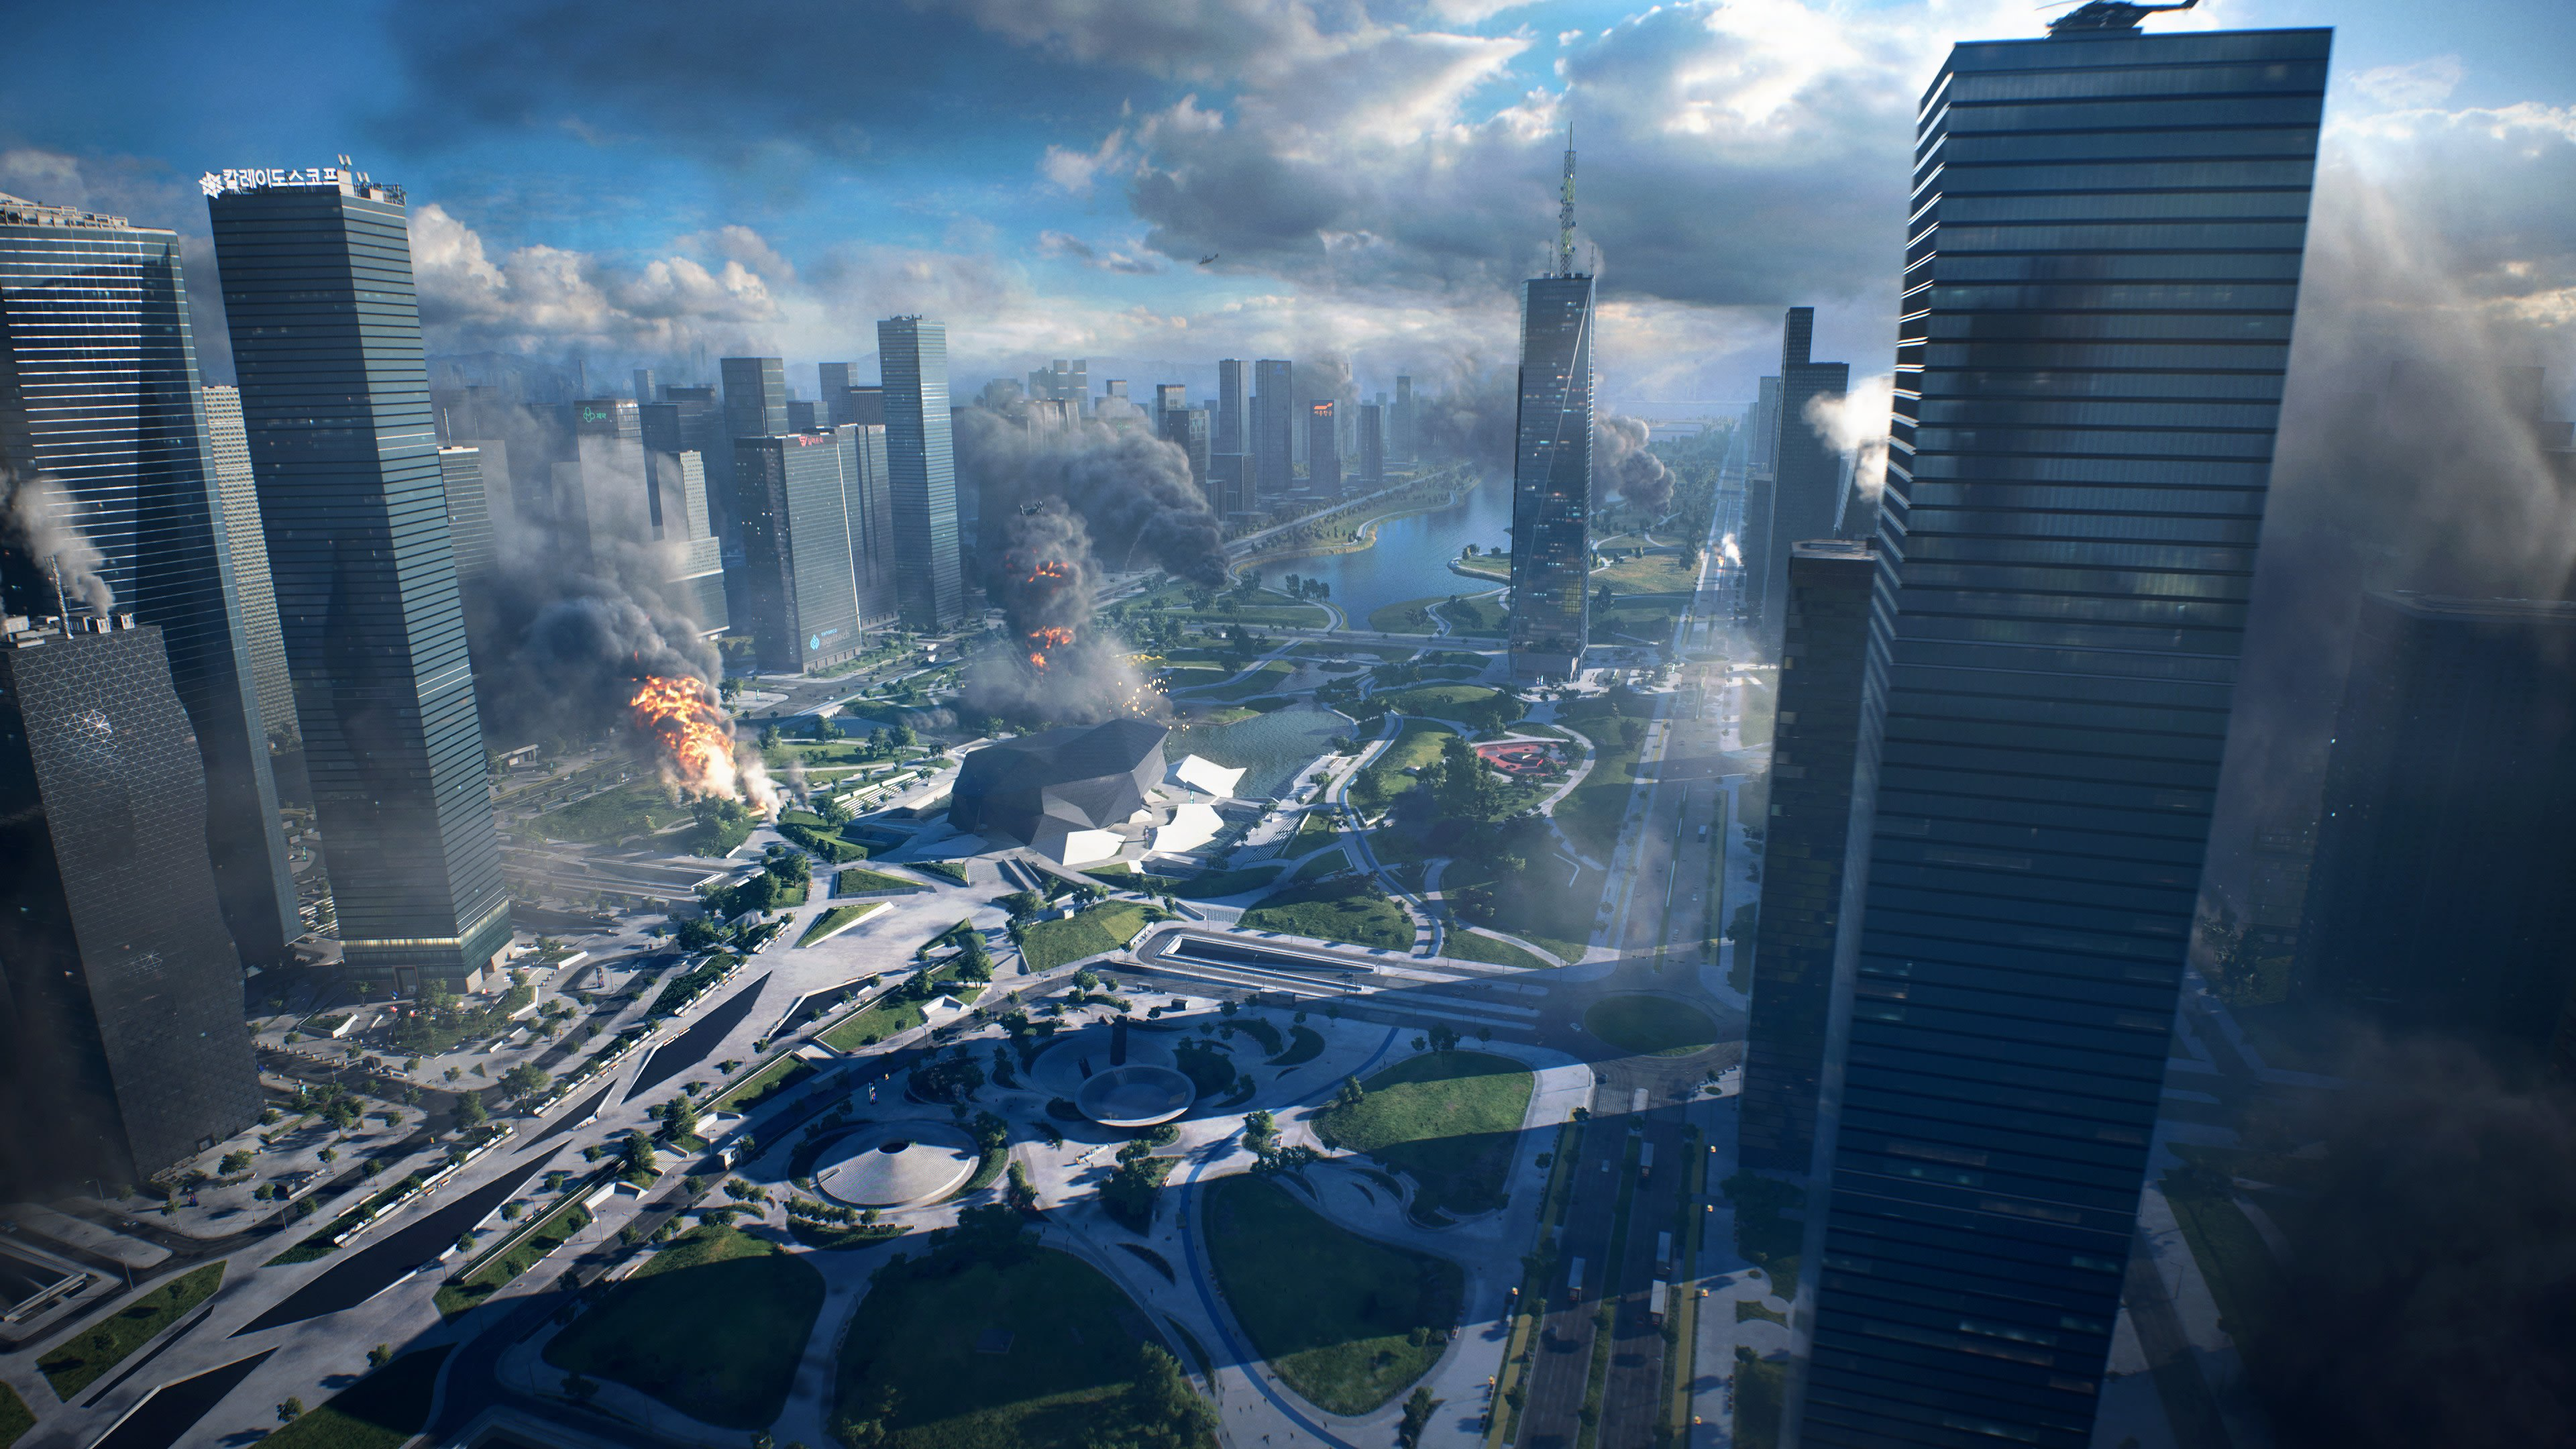 Video Game Battlefield 2042 City Wallpaper Background Image 3840x2160